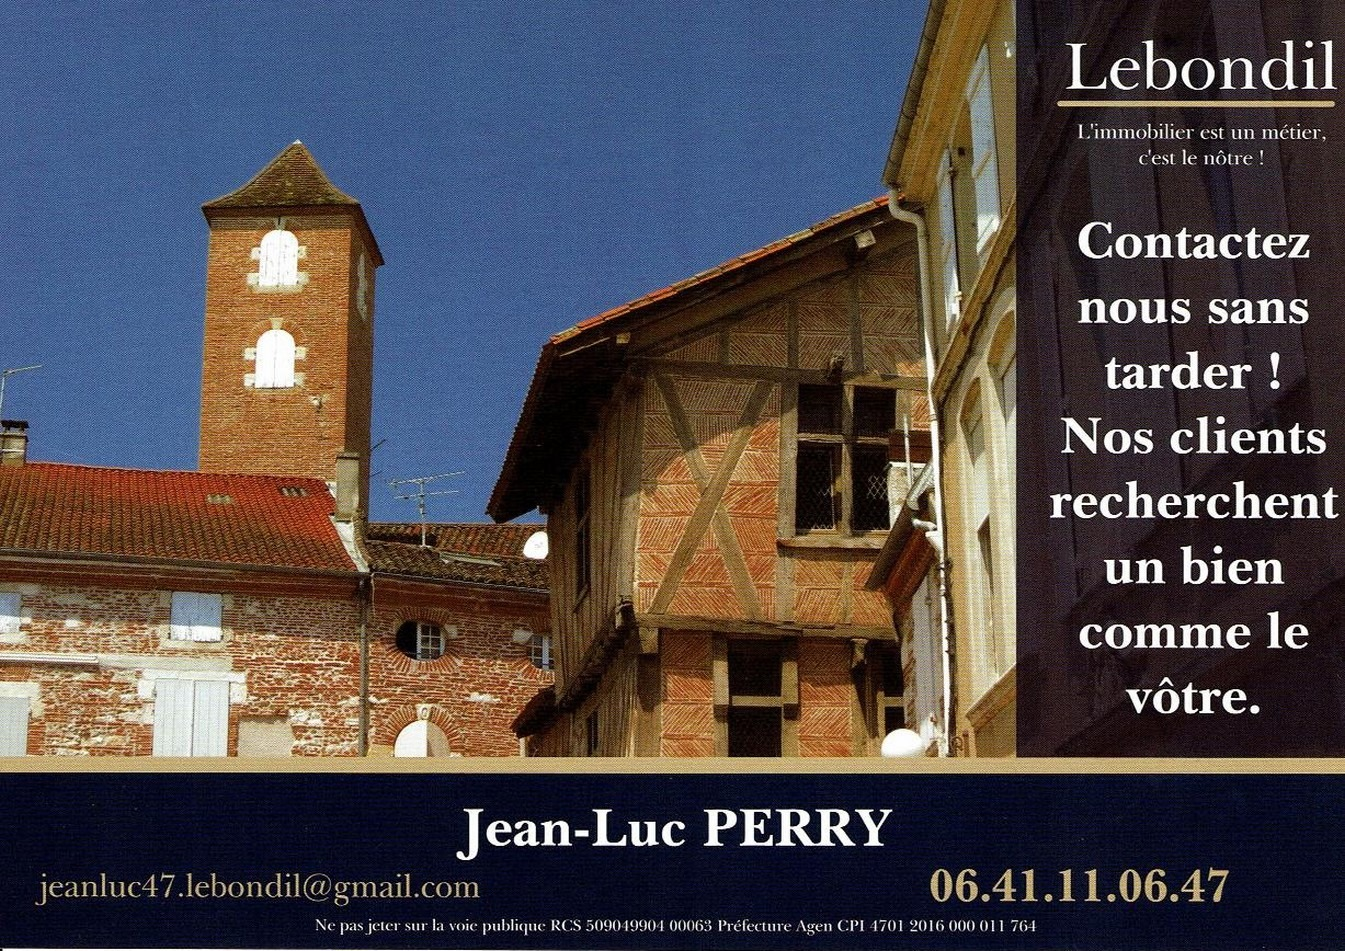 Jean Luc PERRY - LEBONDIL IMMOBILIER.jpg